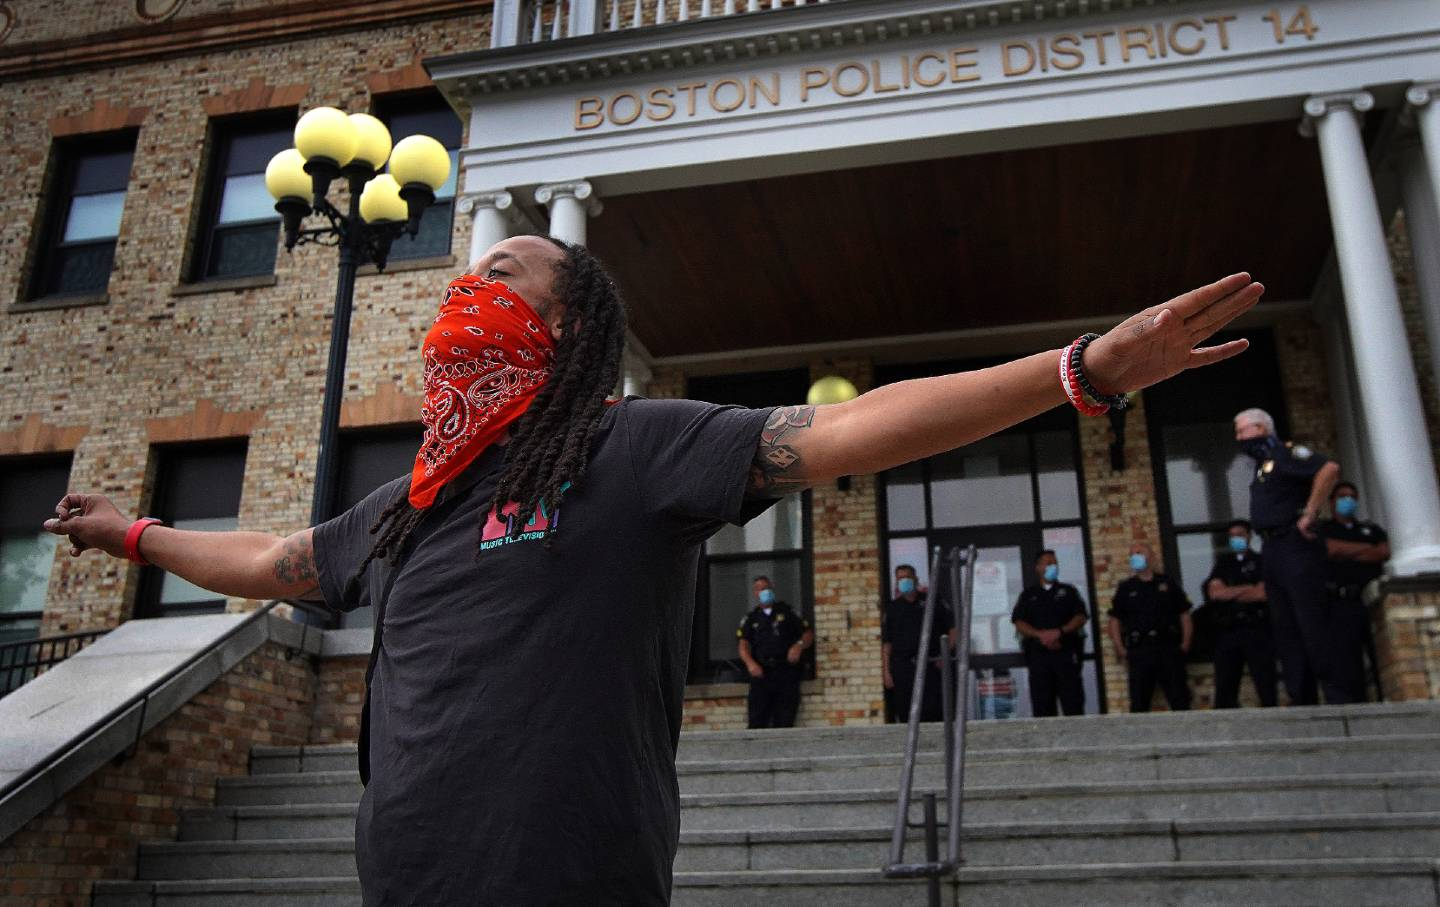 A Black Lives Matter protester wears a bandanna as a mask while speaking at a protest